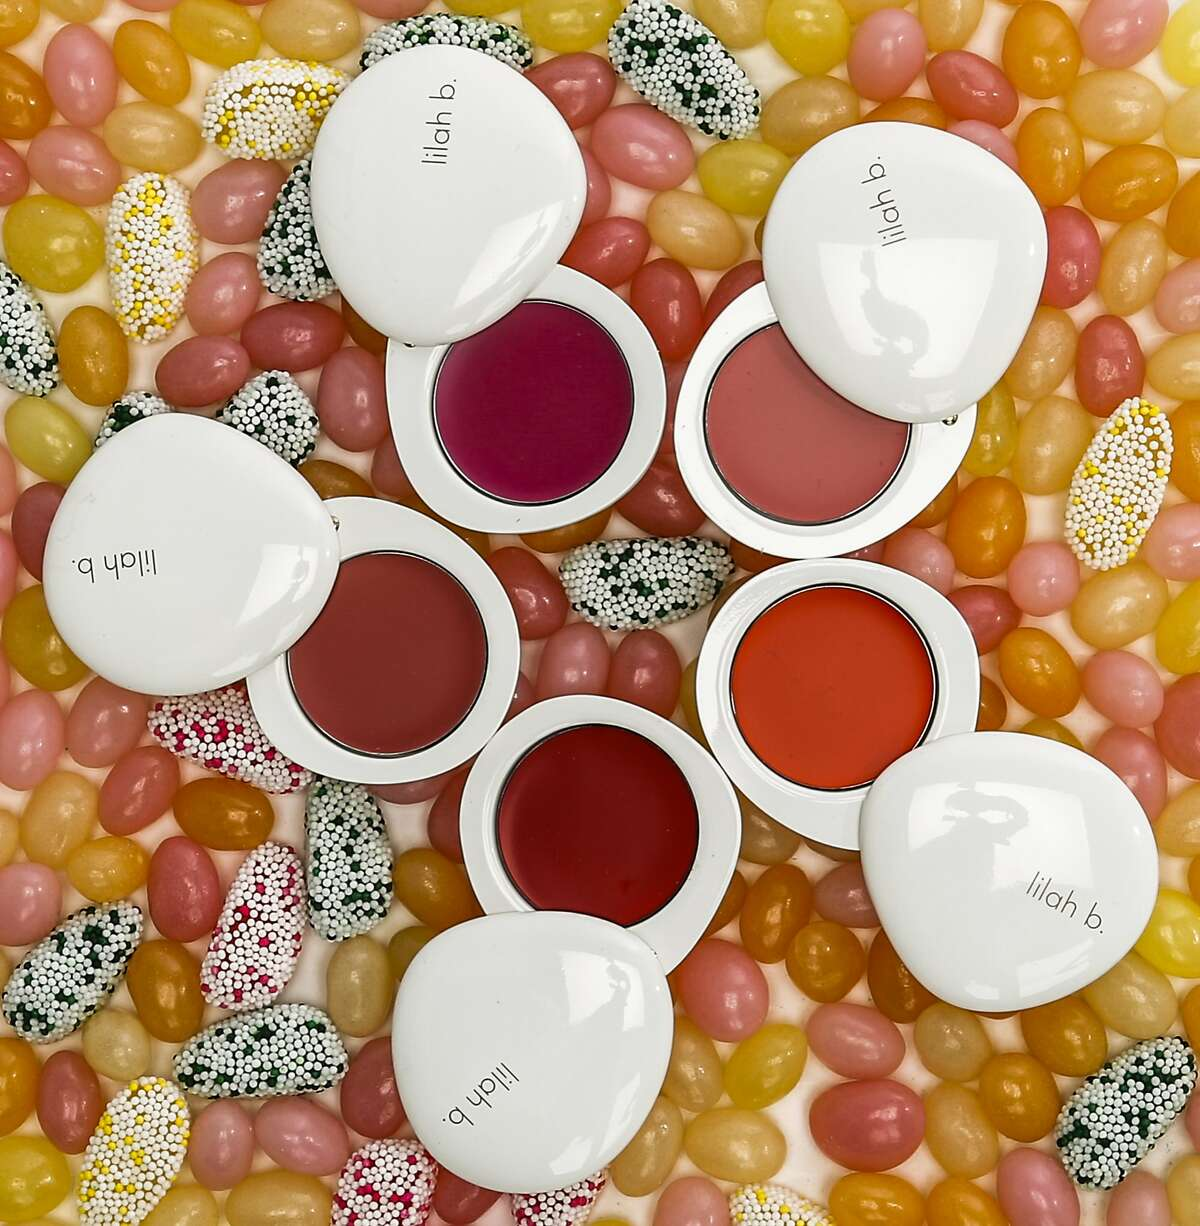 Lilah b.'s lip and skin products are seen on Wednesday, March 25, 2015 in San Francisco, Calif.